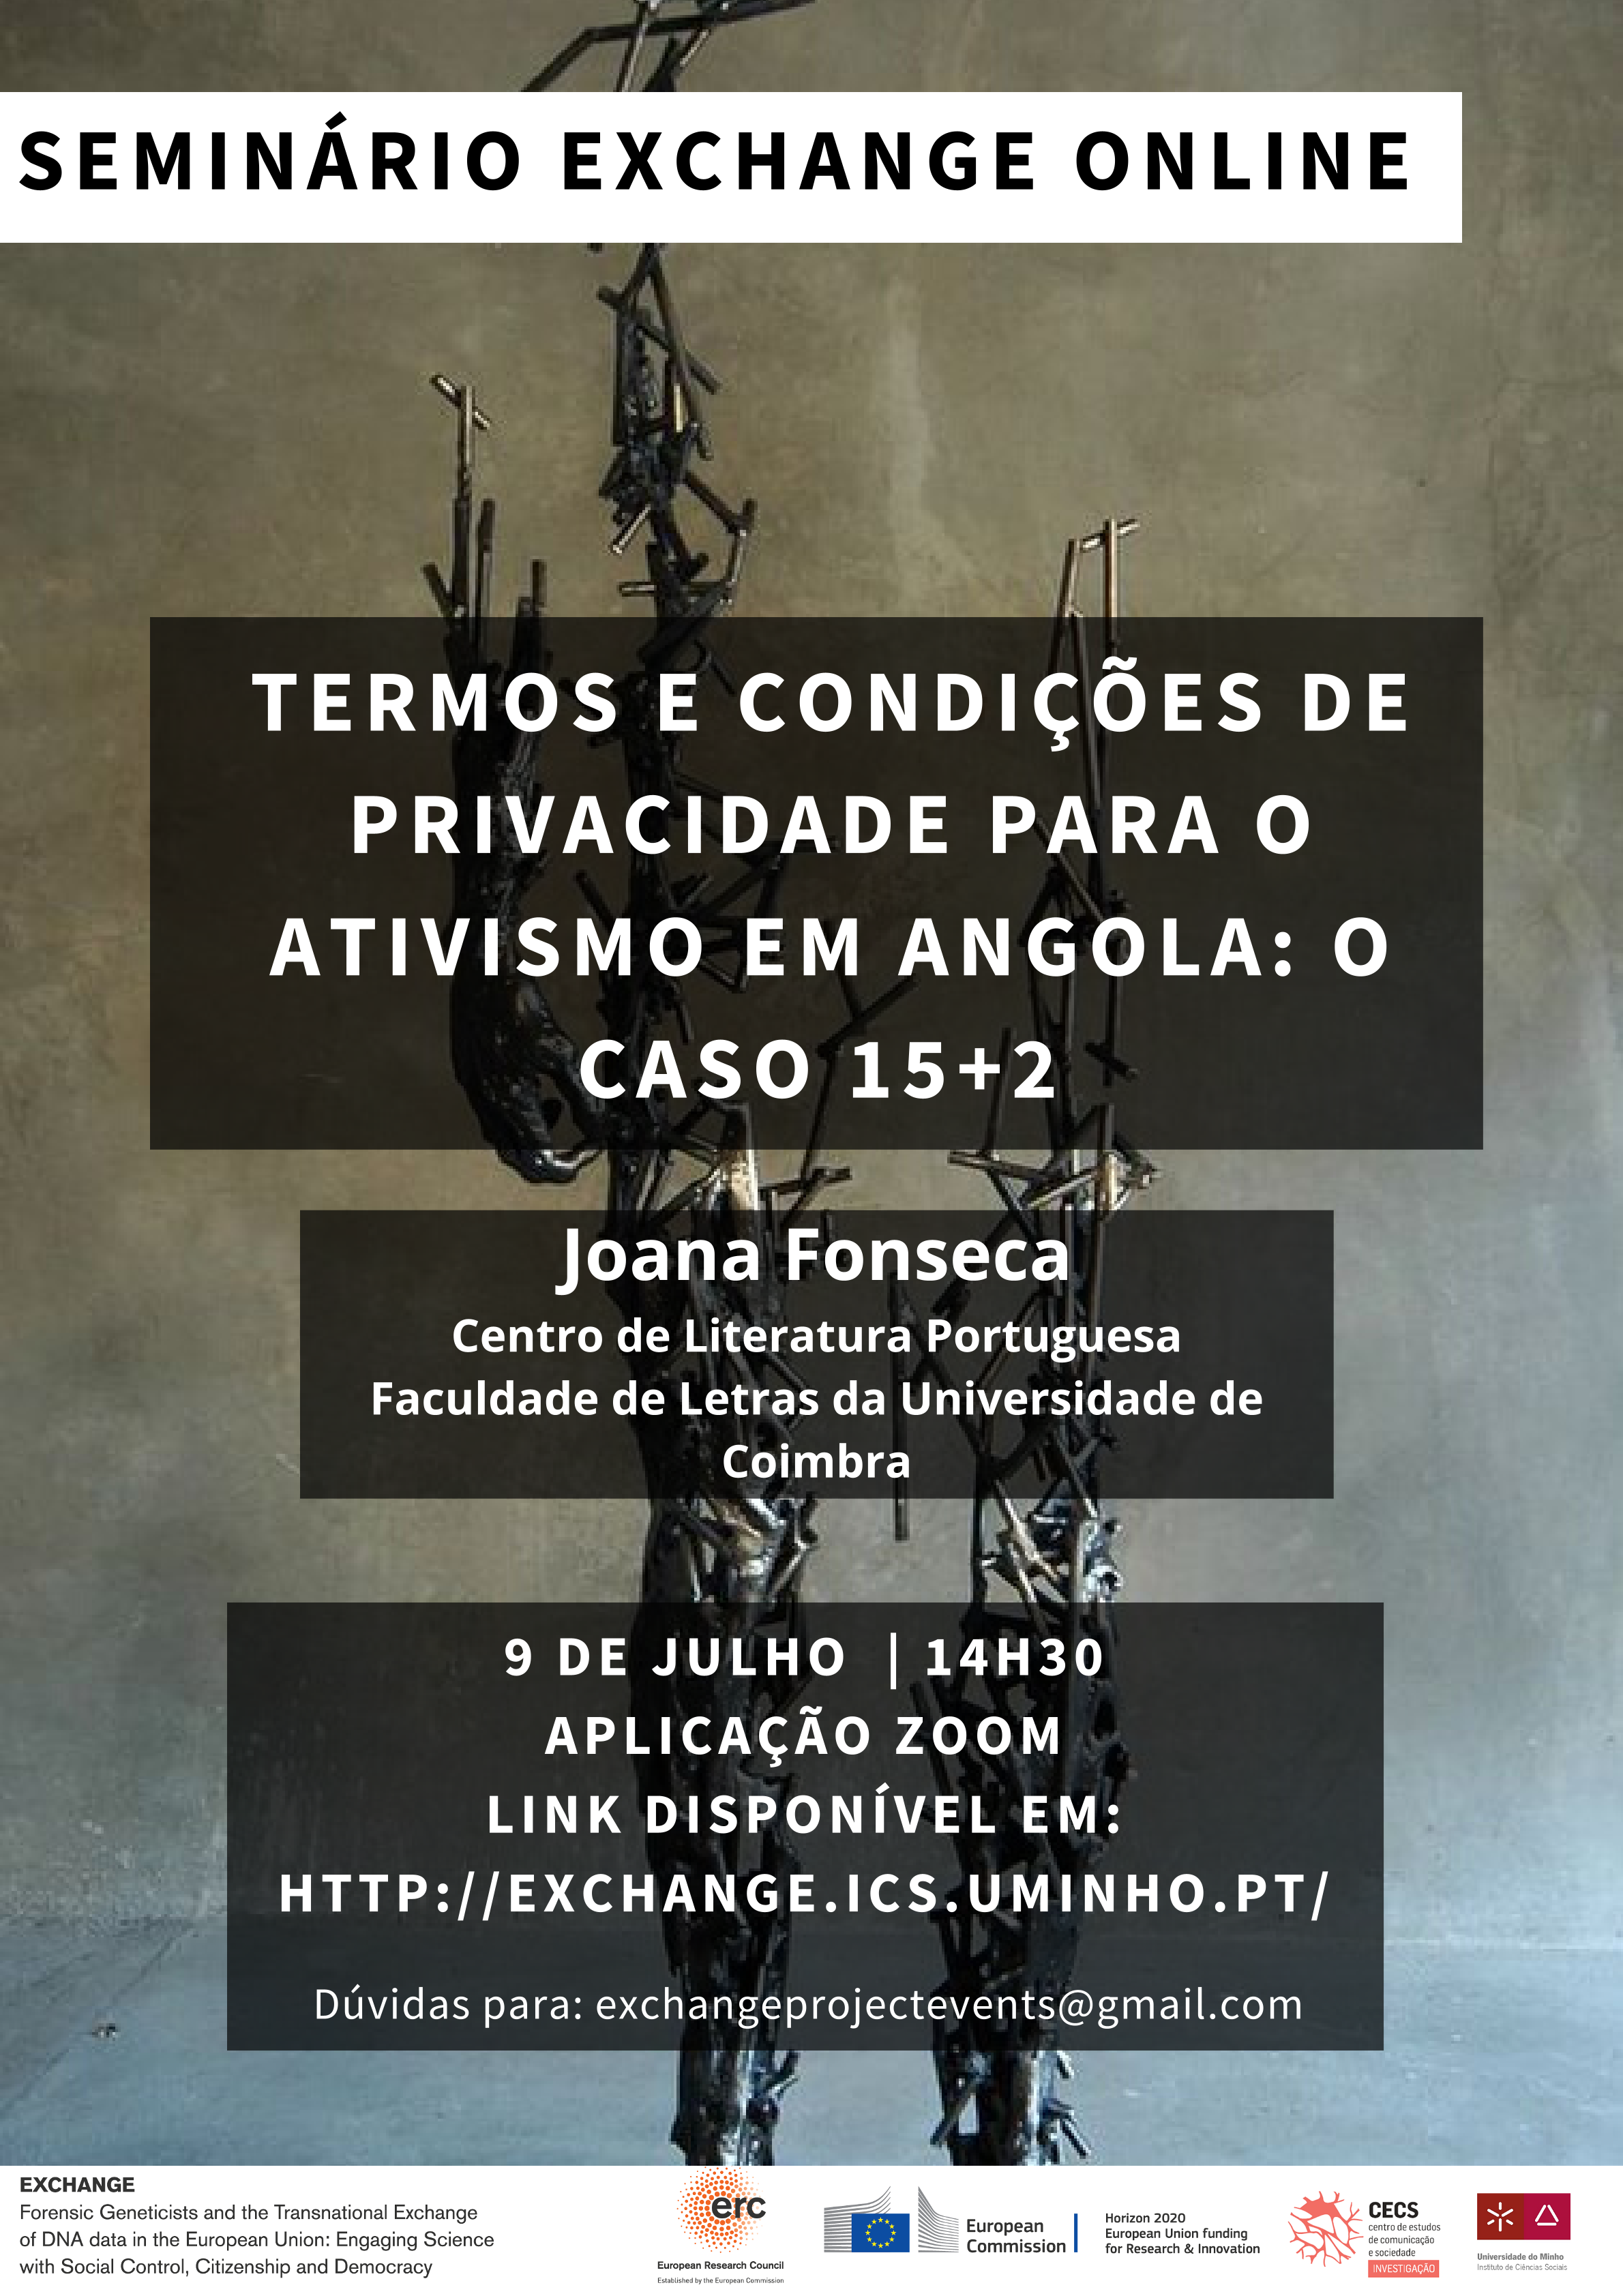 """Exchange seminar: """"Privacy terms and conditions for activism in Angola: the 15+2 case"""""""